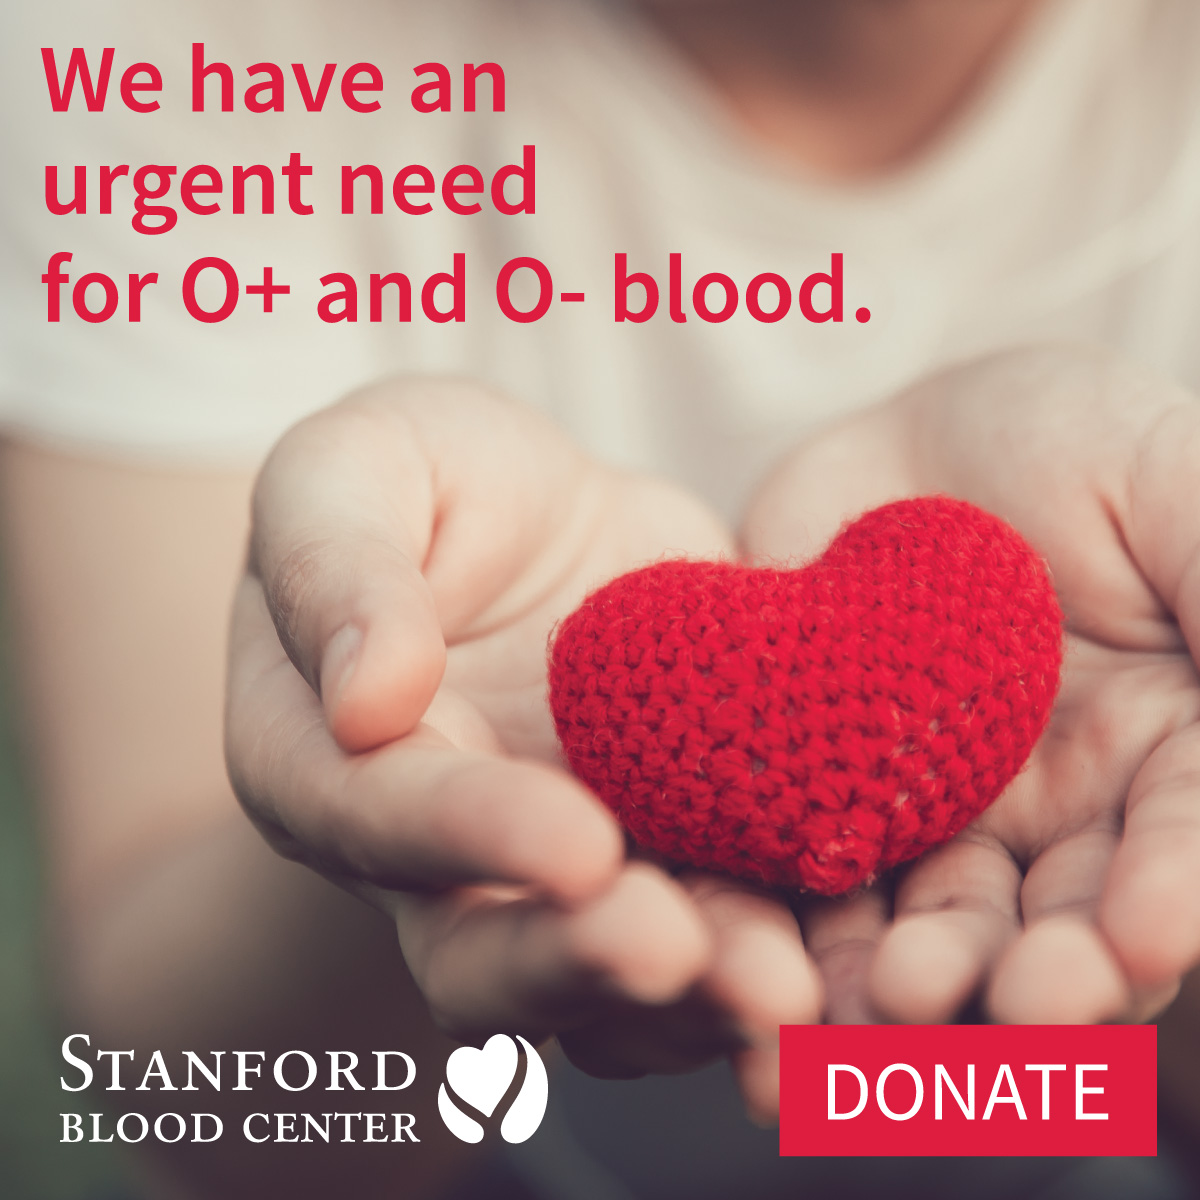 Urgent need for O+ and O- blood products